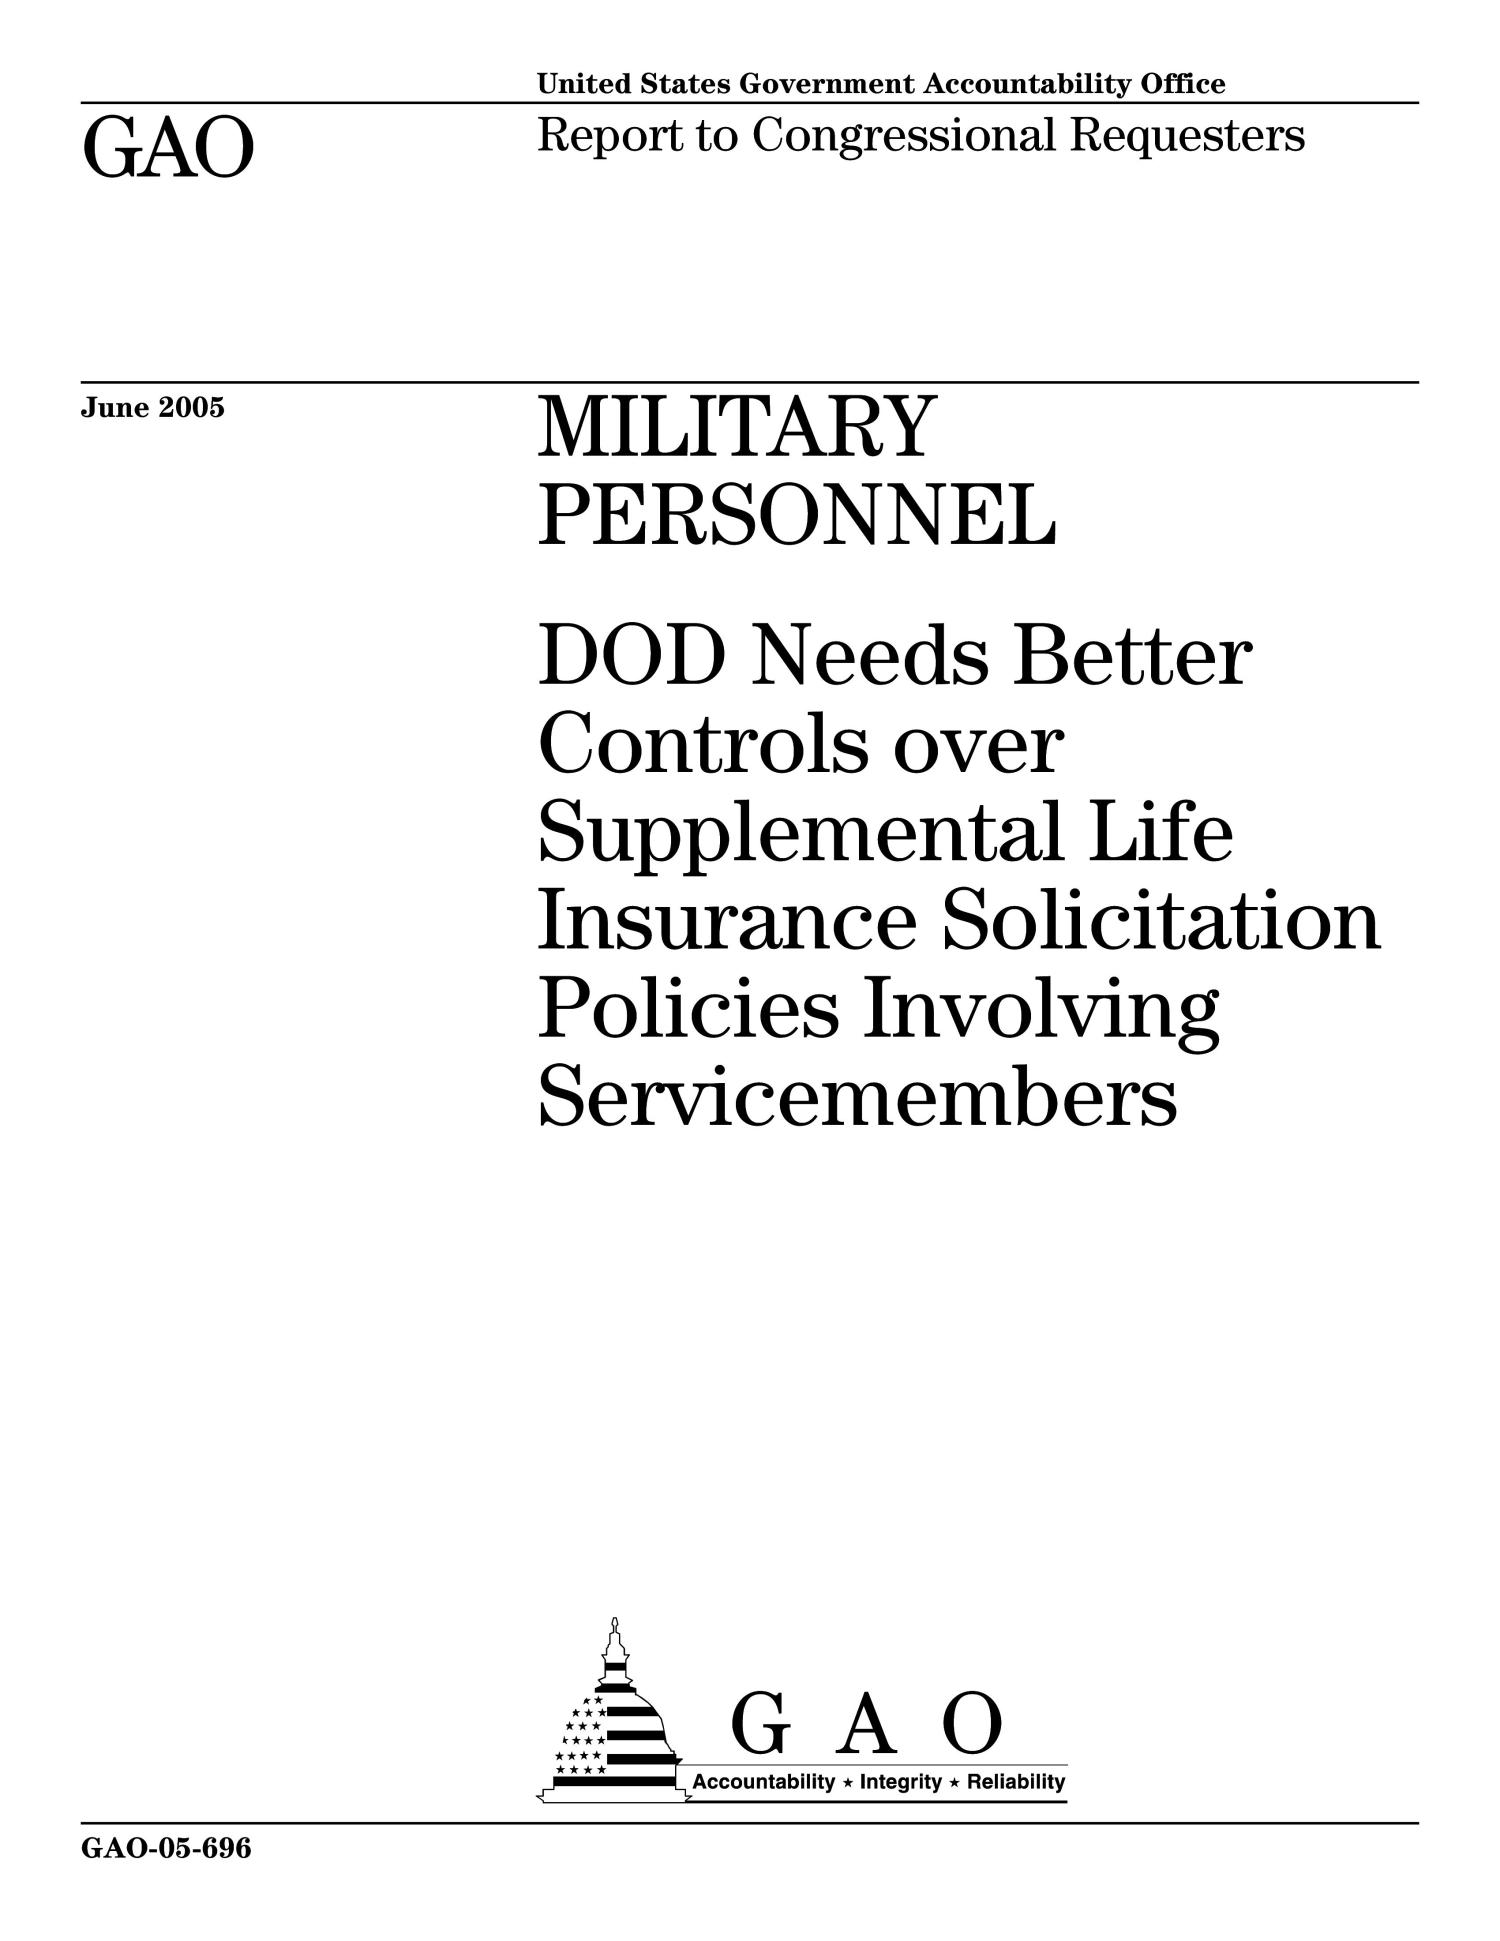 Military Personnel: DOD Needs Better Controls over Supplemental Life Insurance Solicitation Policies Involving Servicemembers                                                                                                      [Sequence #]: 1 of 71